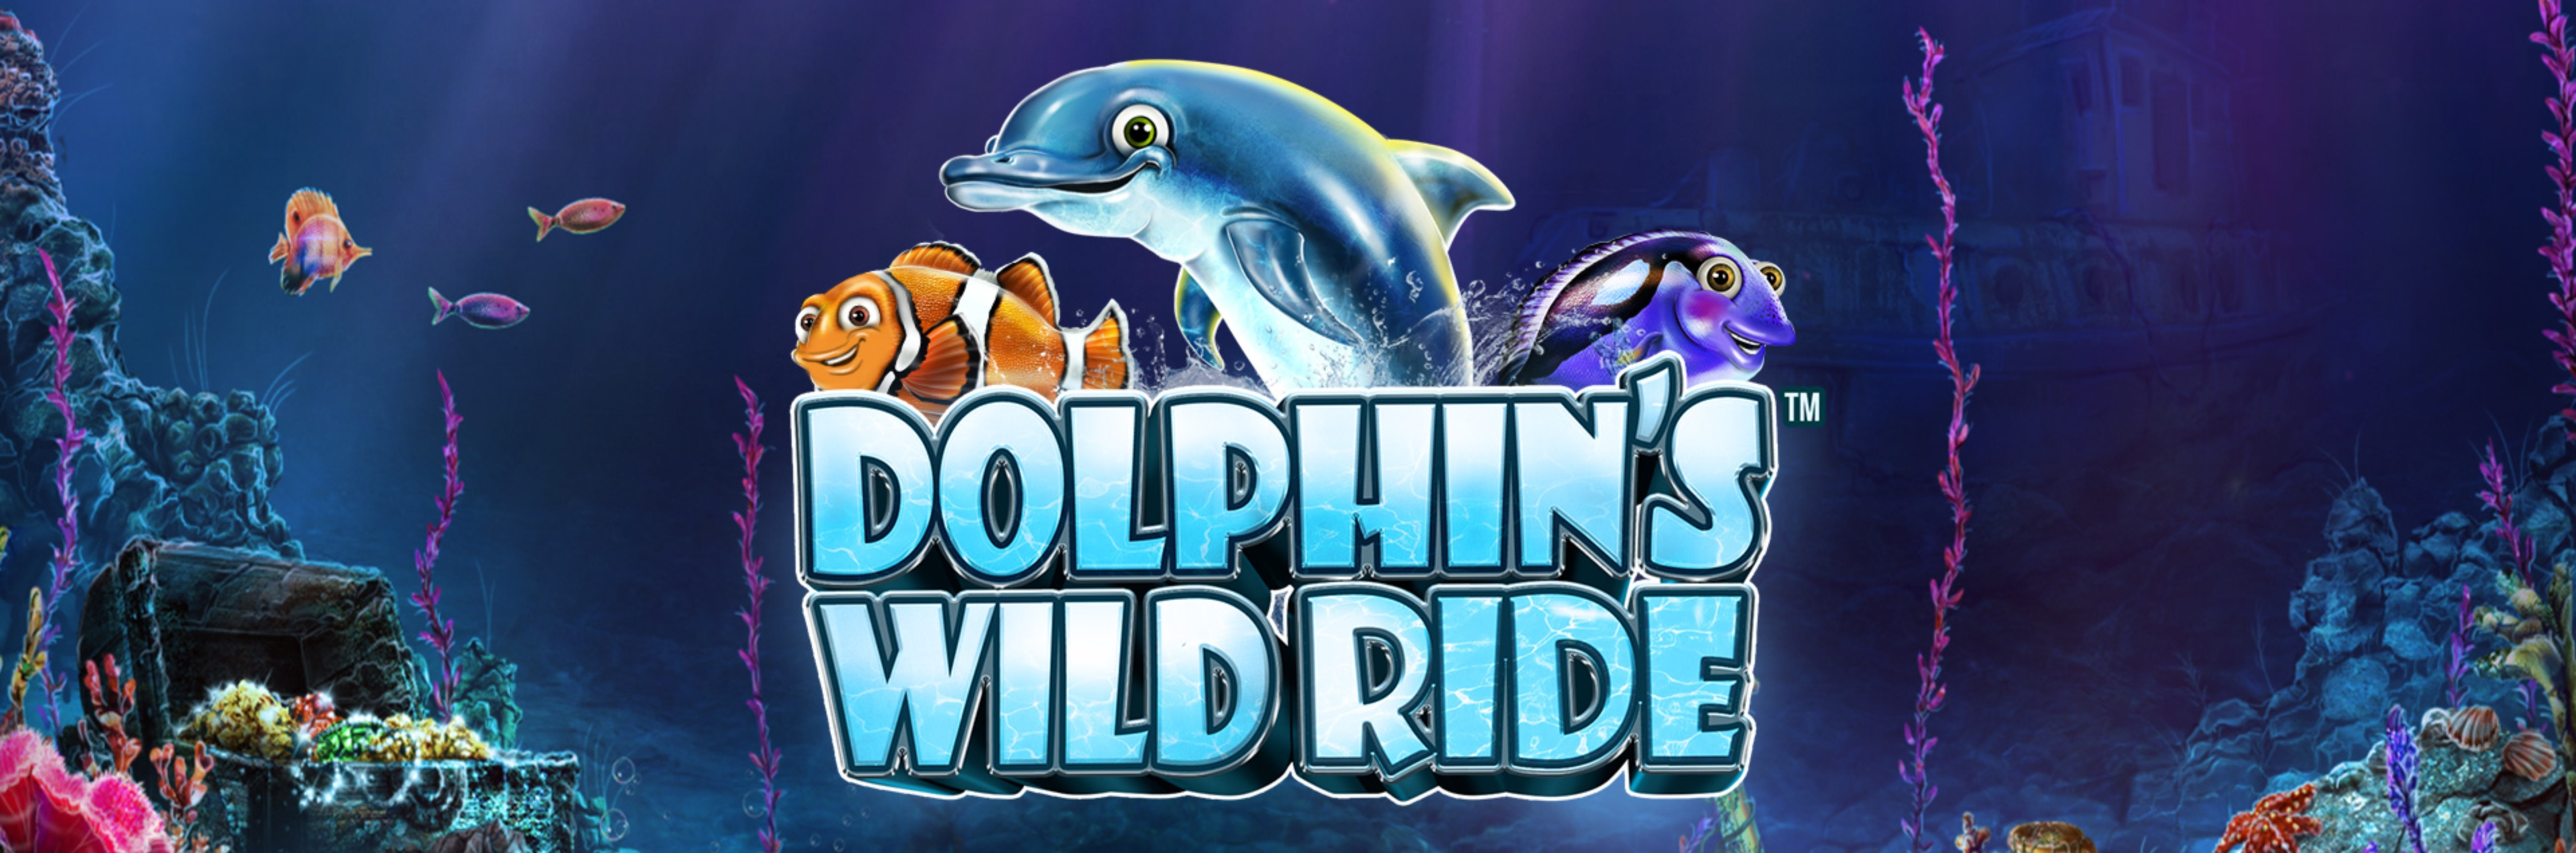 The Dolphin's Wild Ride Online Slot Demo Game by Synot Games